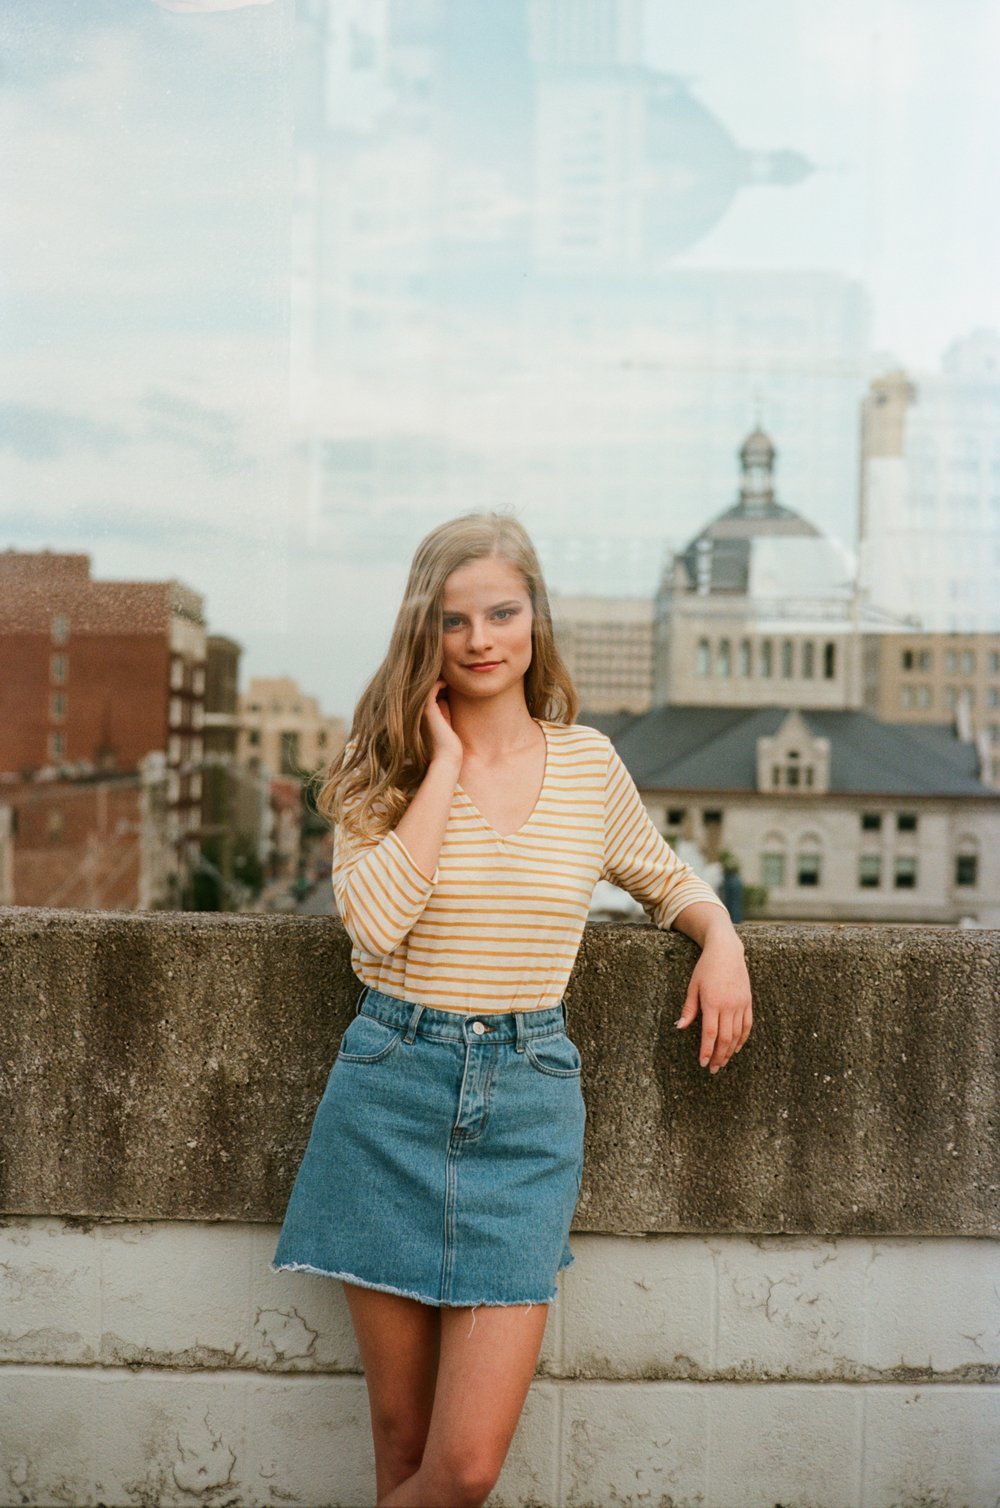 Molly in downtown Lexington, KY on Portra 160 35 mm film